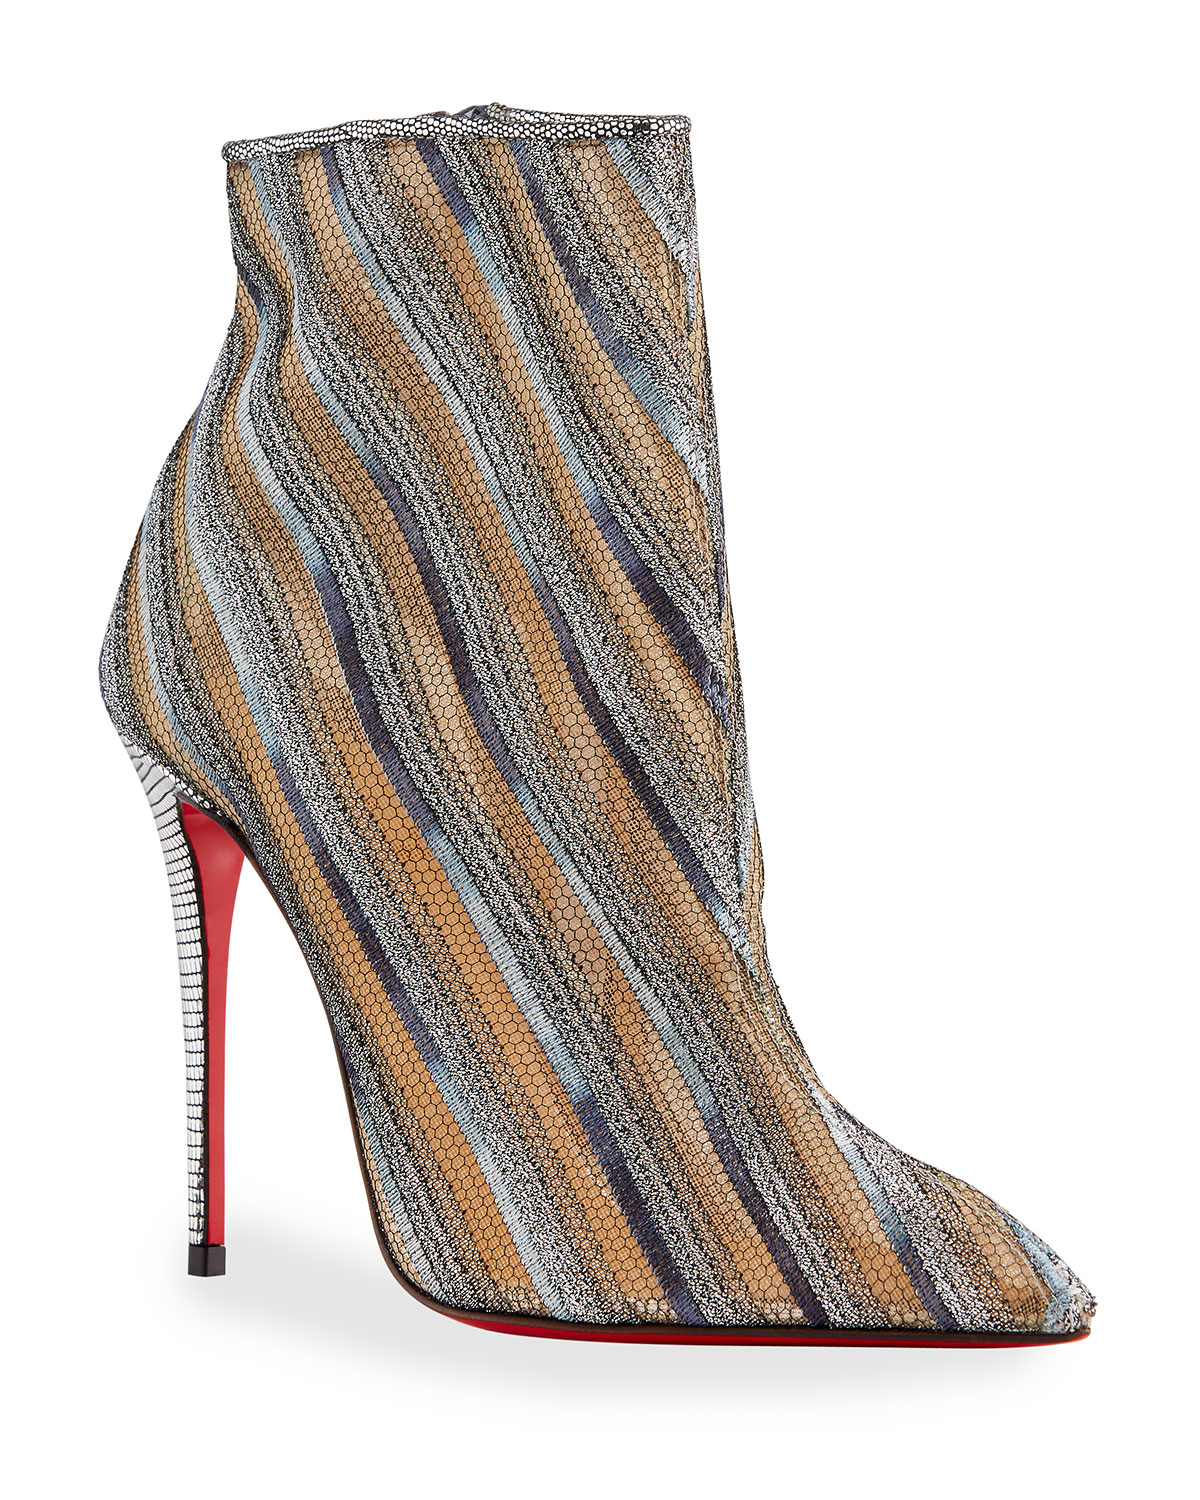 Christian Louboutin GIPSY MULTICOLORED ZIP RED SOLE BOOTIES